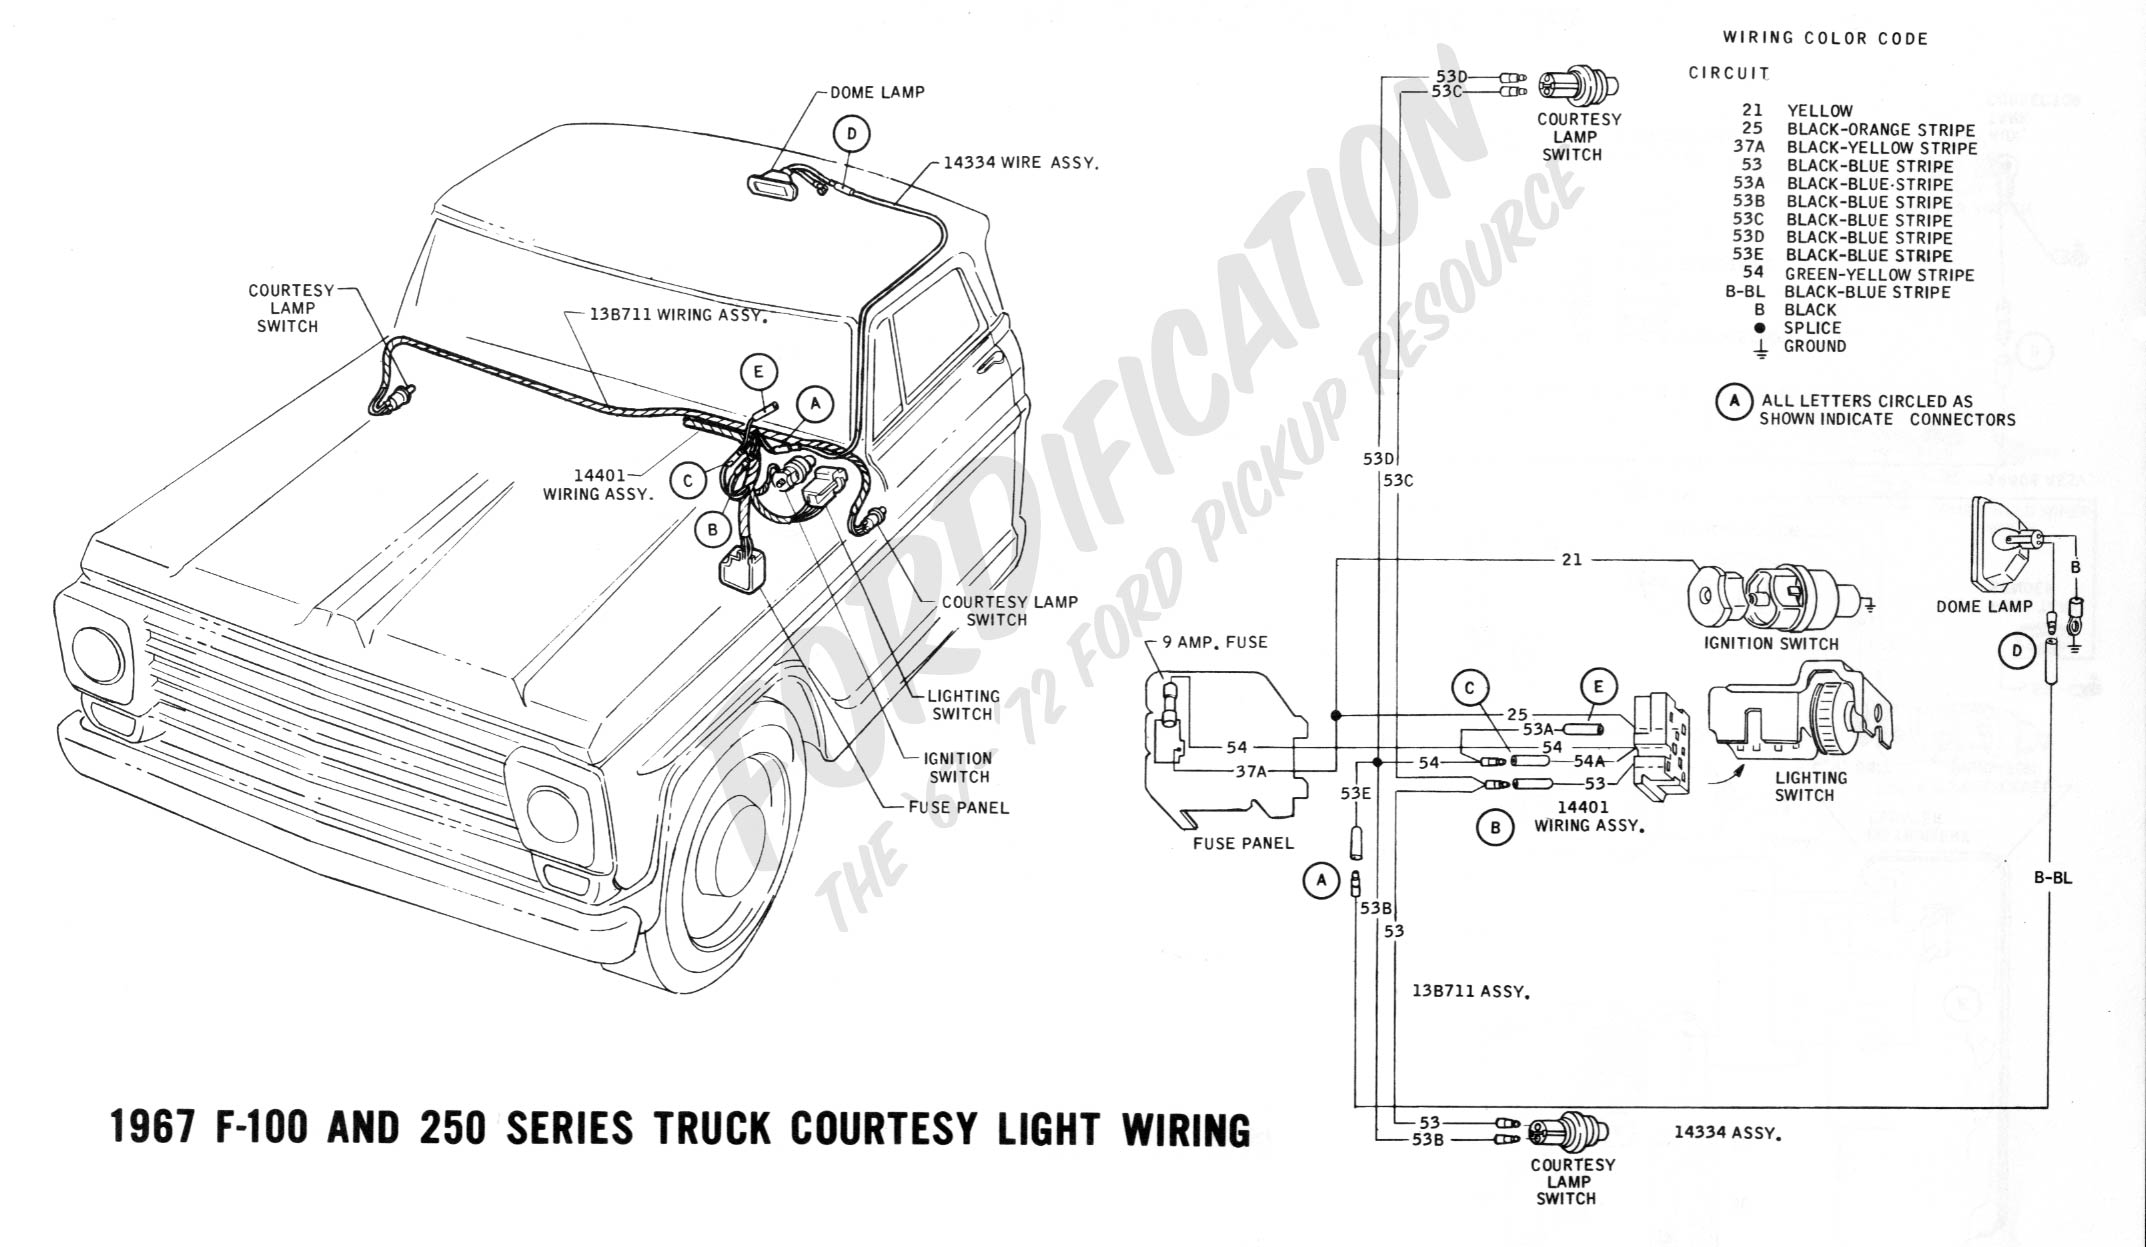 Ford Truck Technical Drawings And Schematics Section H Wiring 1964 Gmc Electrical System Diagram 1967 F 100 250 Courtesy Light